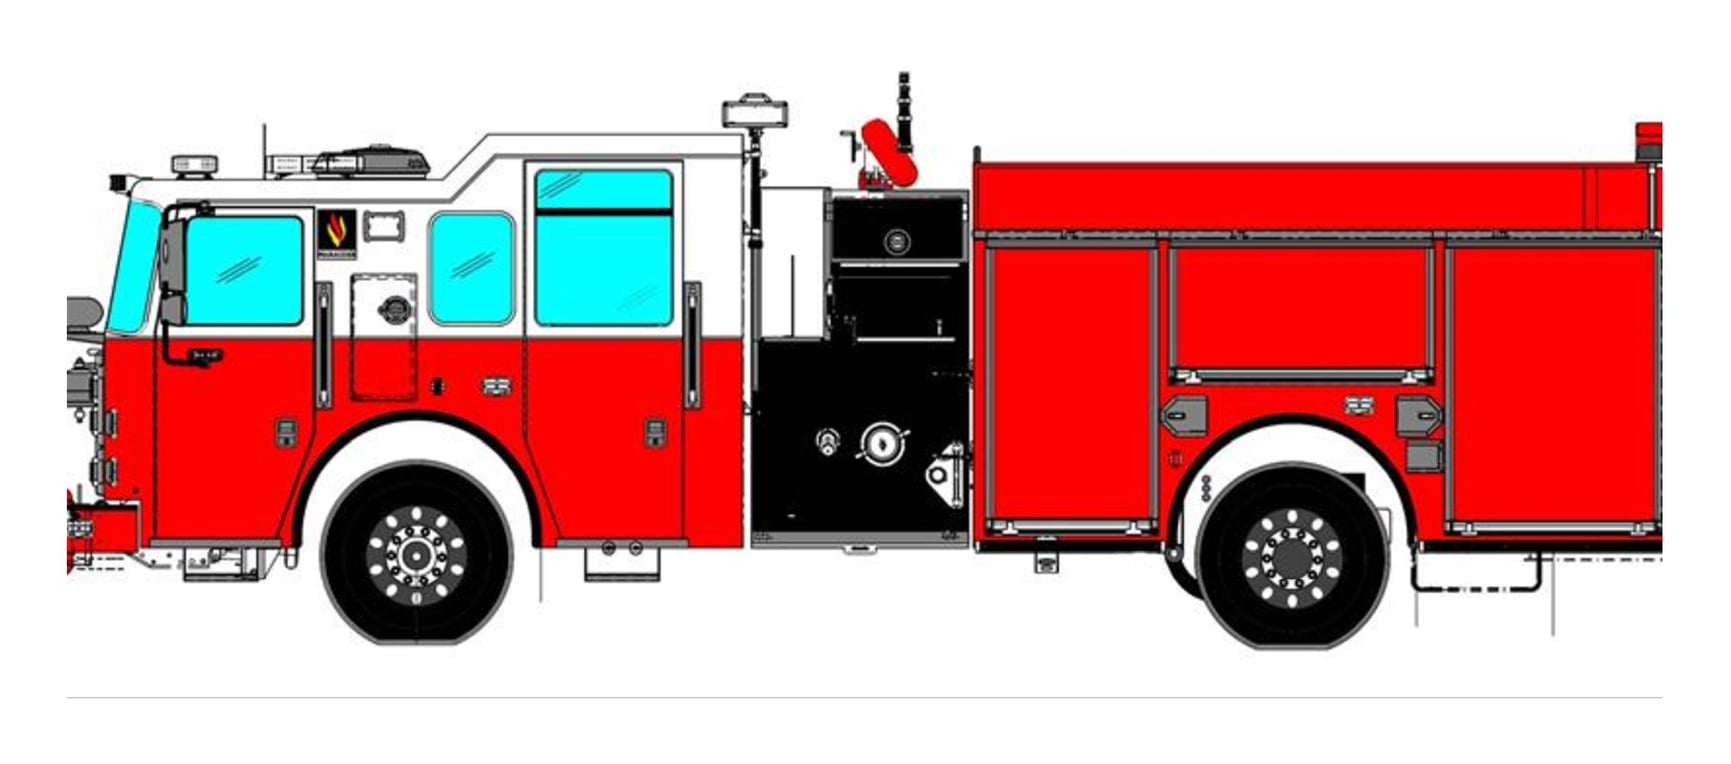 drawing of a Seagrave Marauder pumper for the West Allis Fire Department of Wisconsin